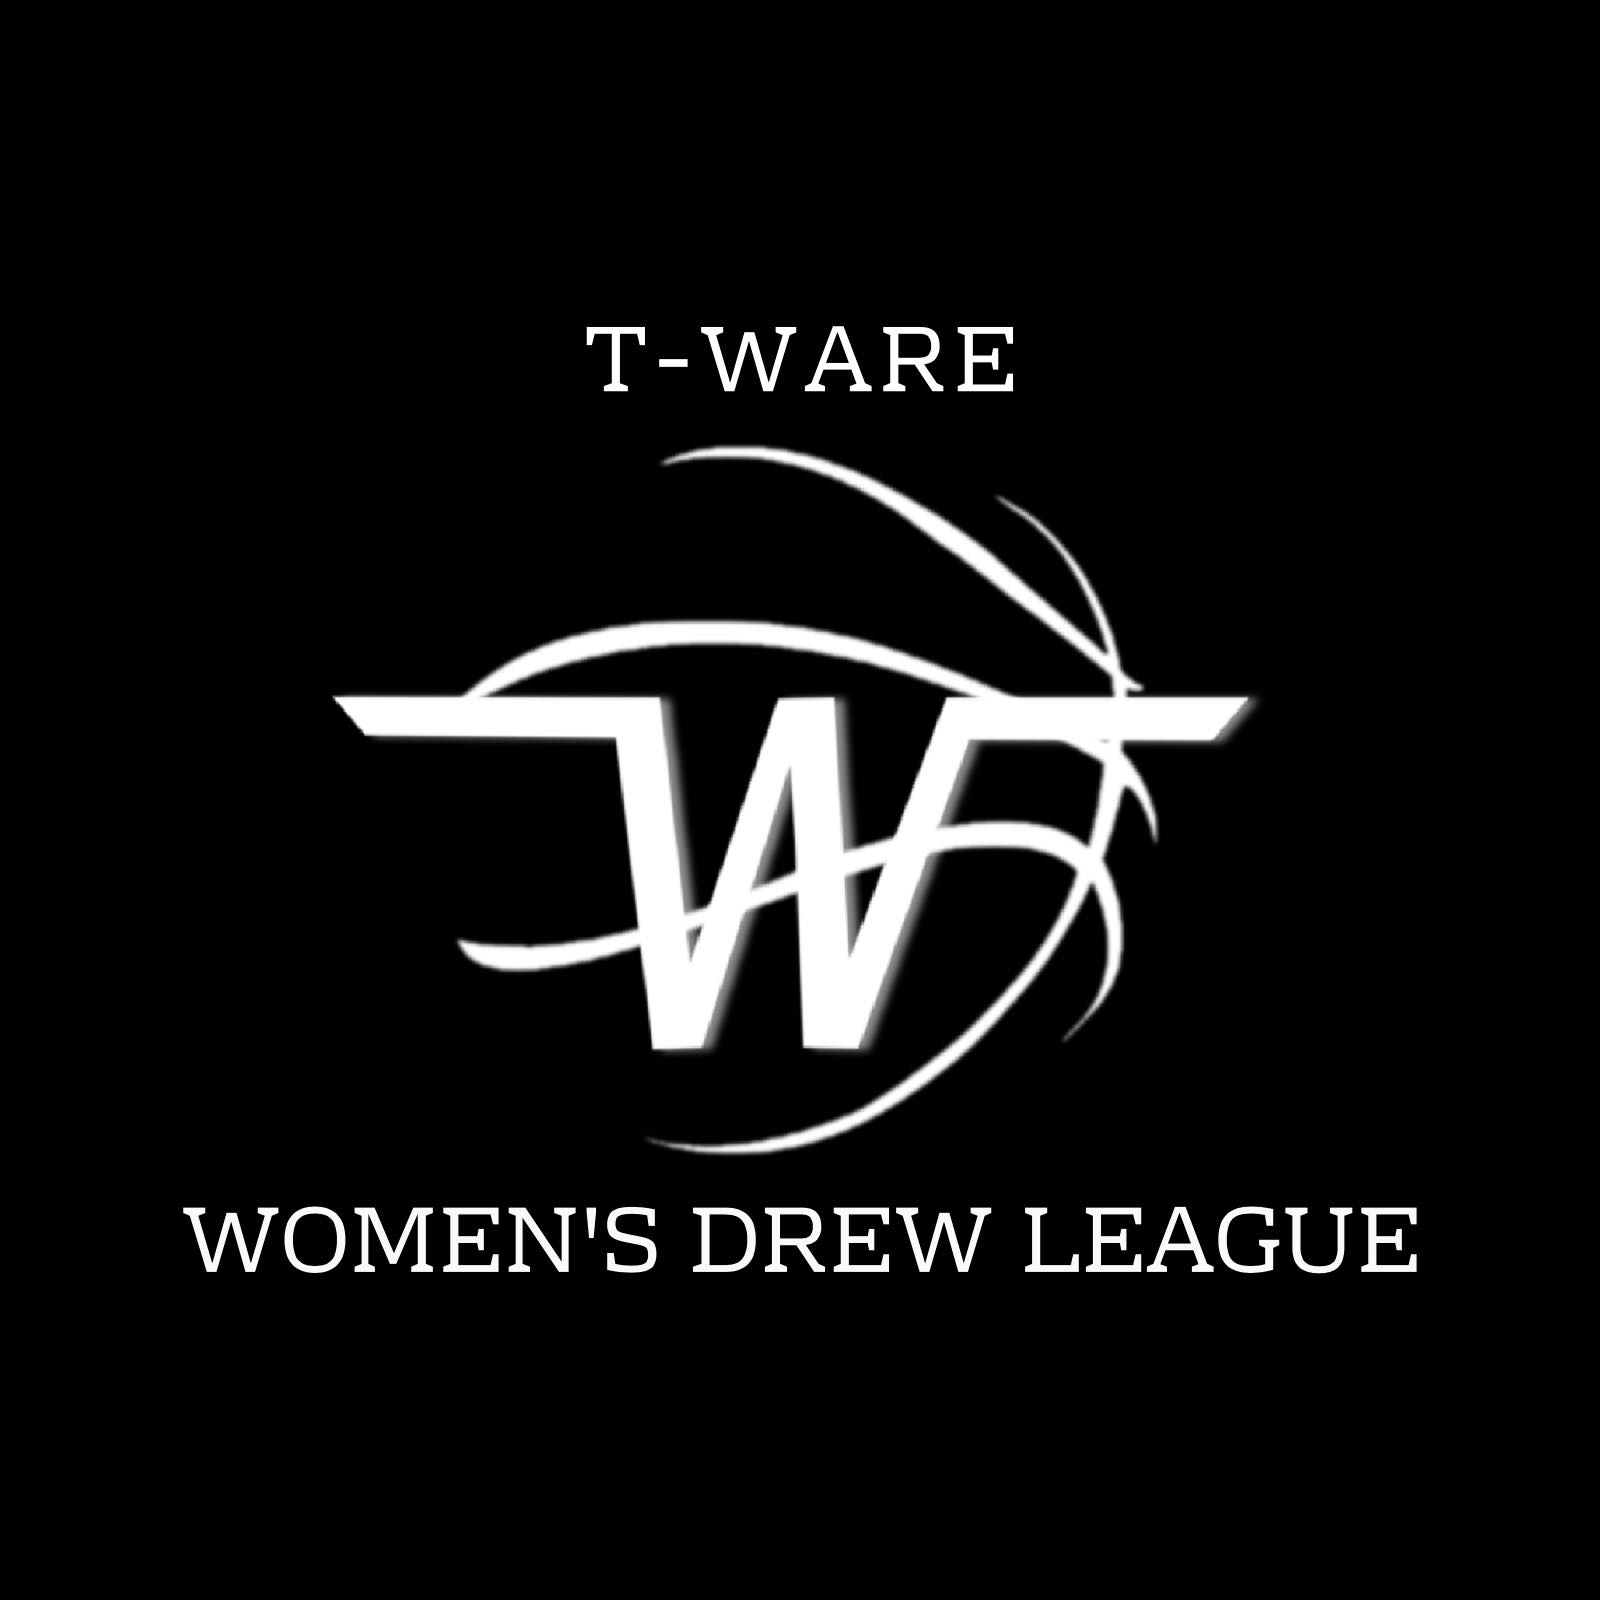 WOMEN'S DREW LEAGUE